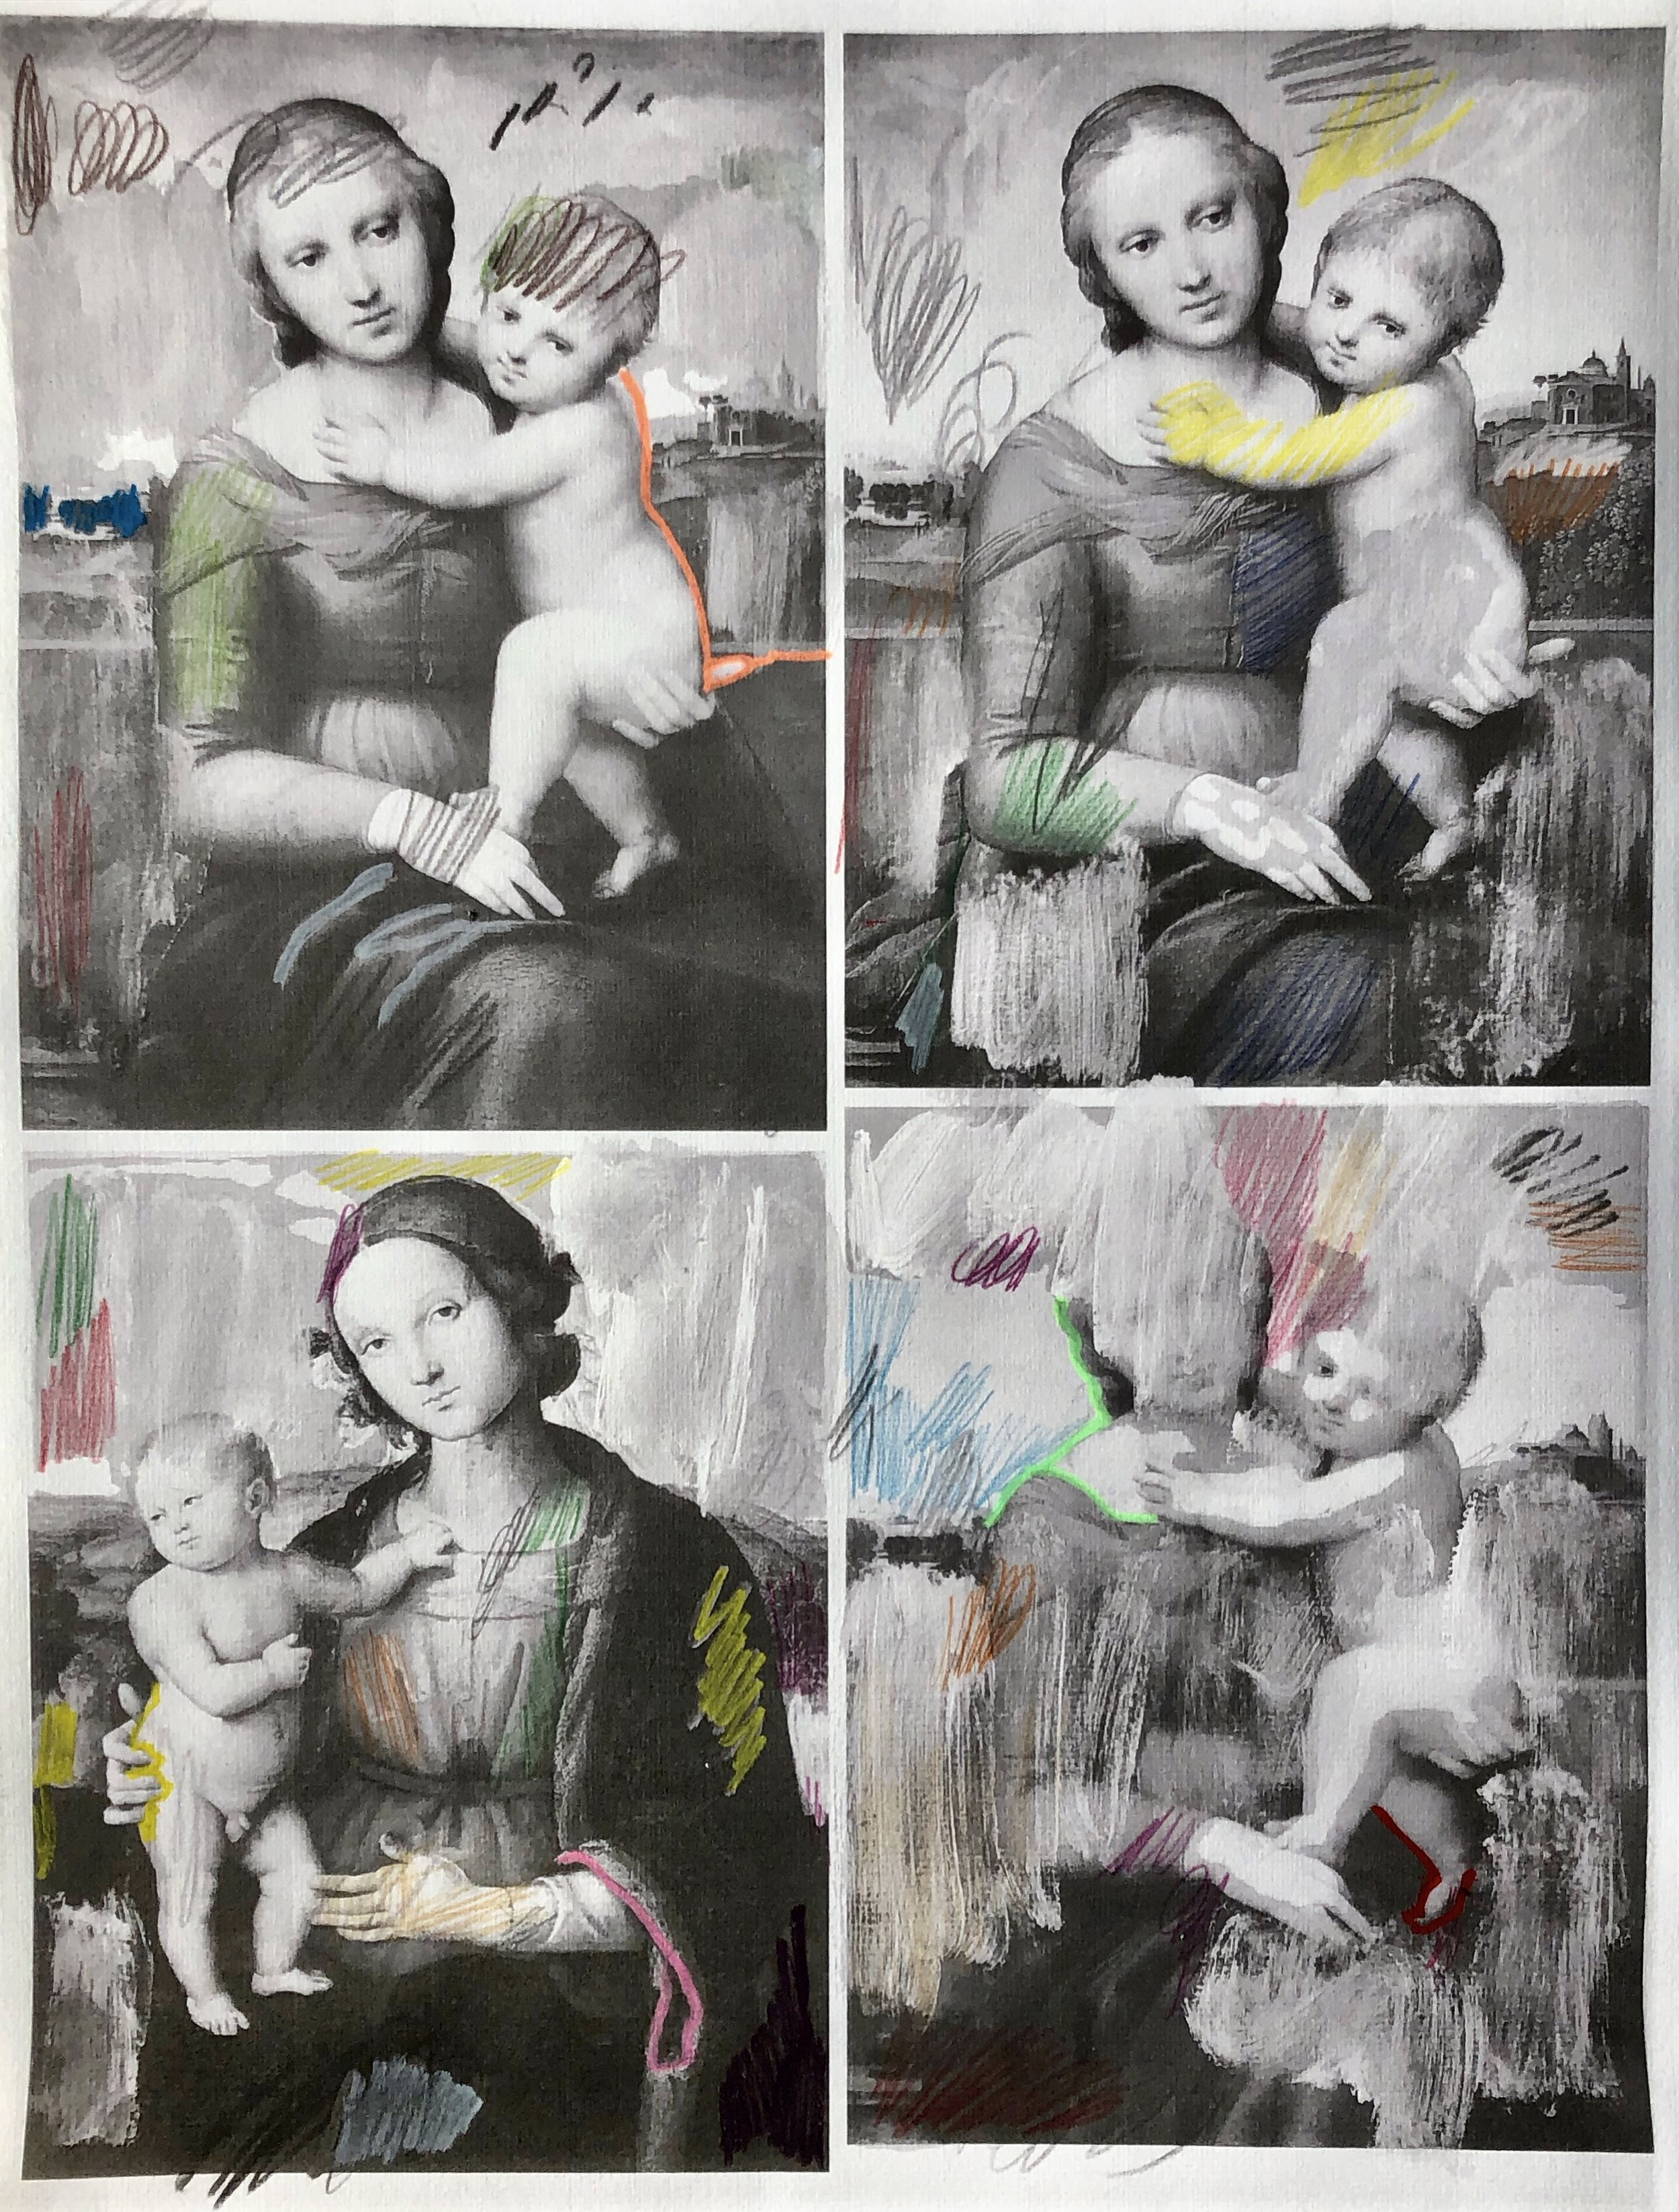 """q=raphael+madonna+child"", 33 cm x 48.5 cm, mixed media on paper."